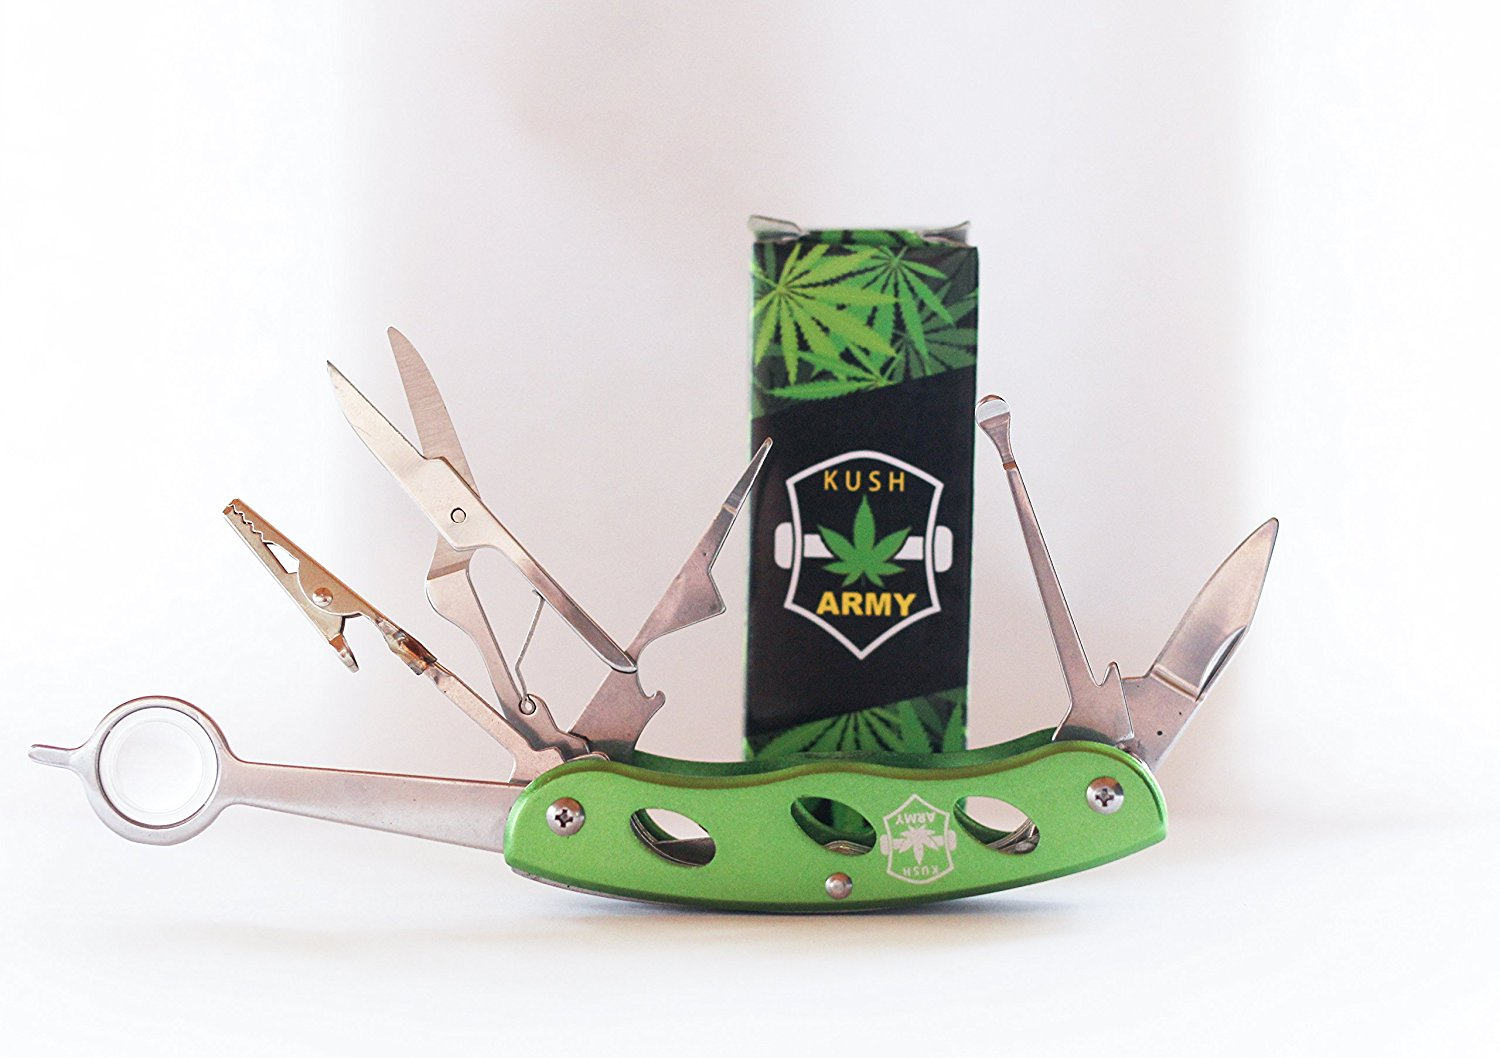 Kush Army Knife A Multi Tool For The Prepared Stoner